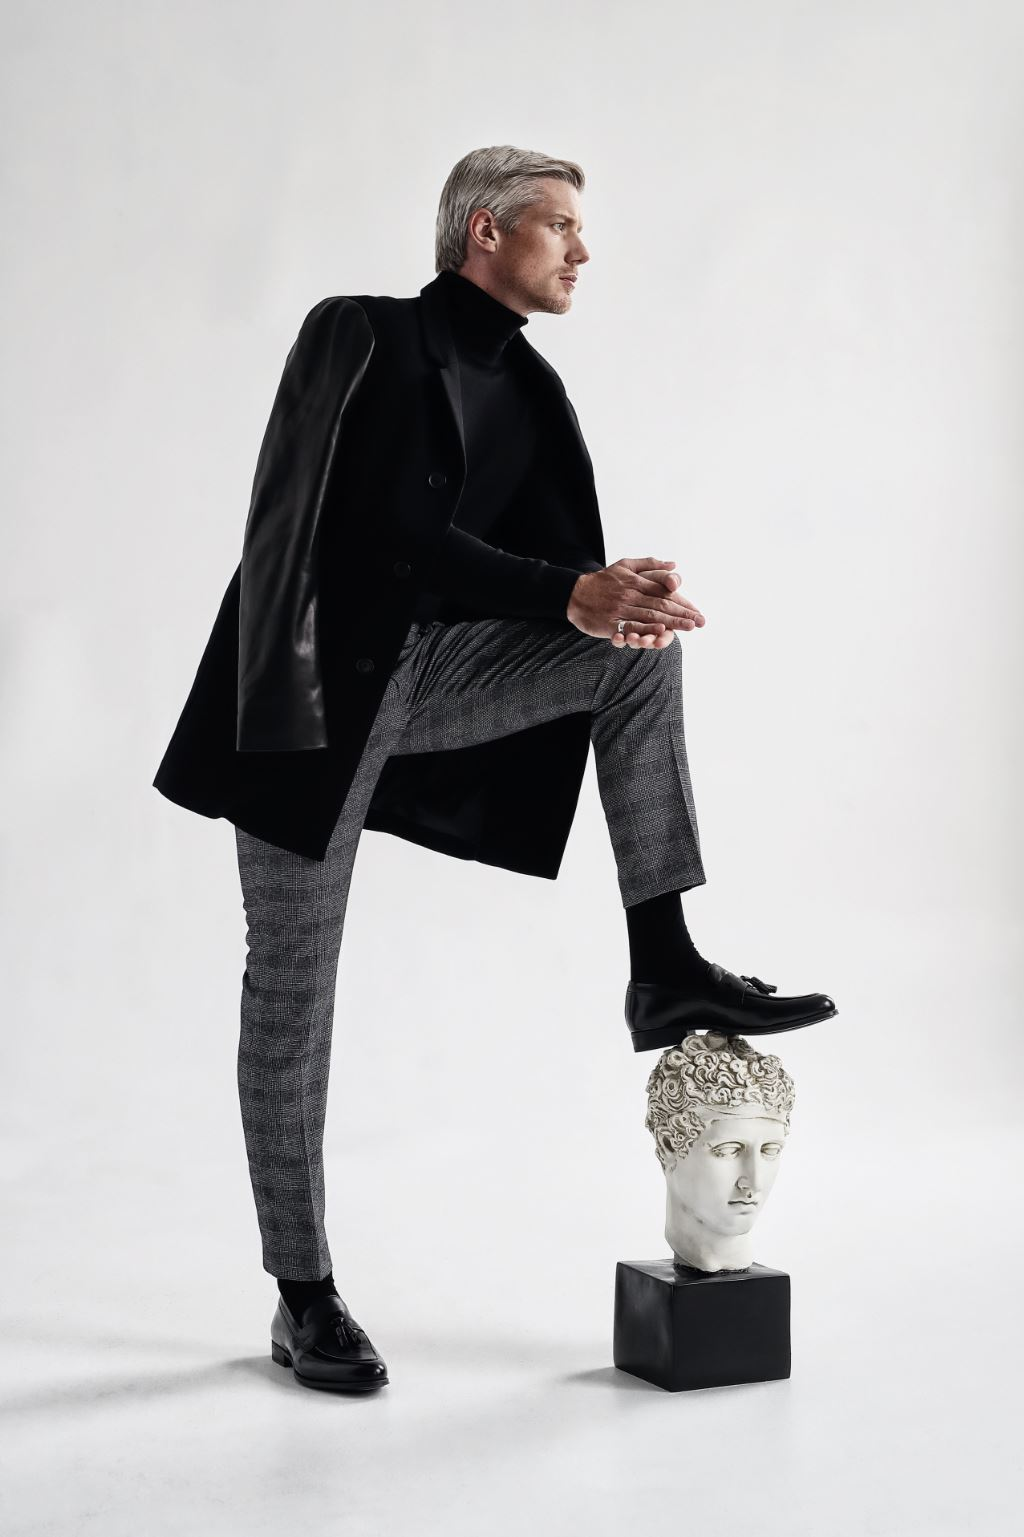 Jacket RUDSAK ($595). Pants TIGER OF SWEDEN ($299). Turtleneck LEMAIRE ($455 USD). Socks BARNEY'S NYC ($44 USD).